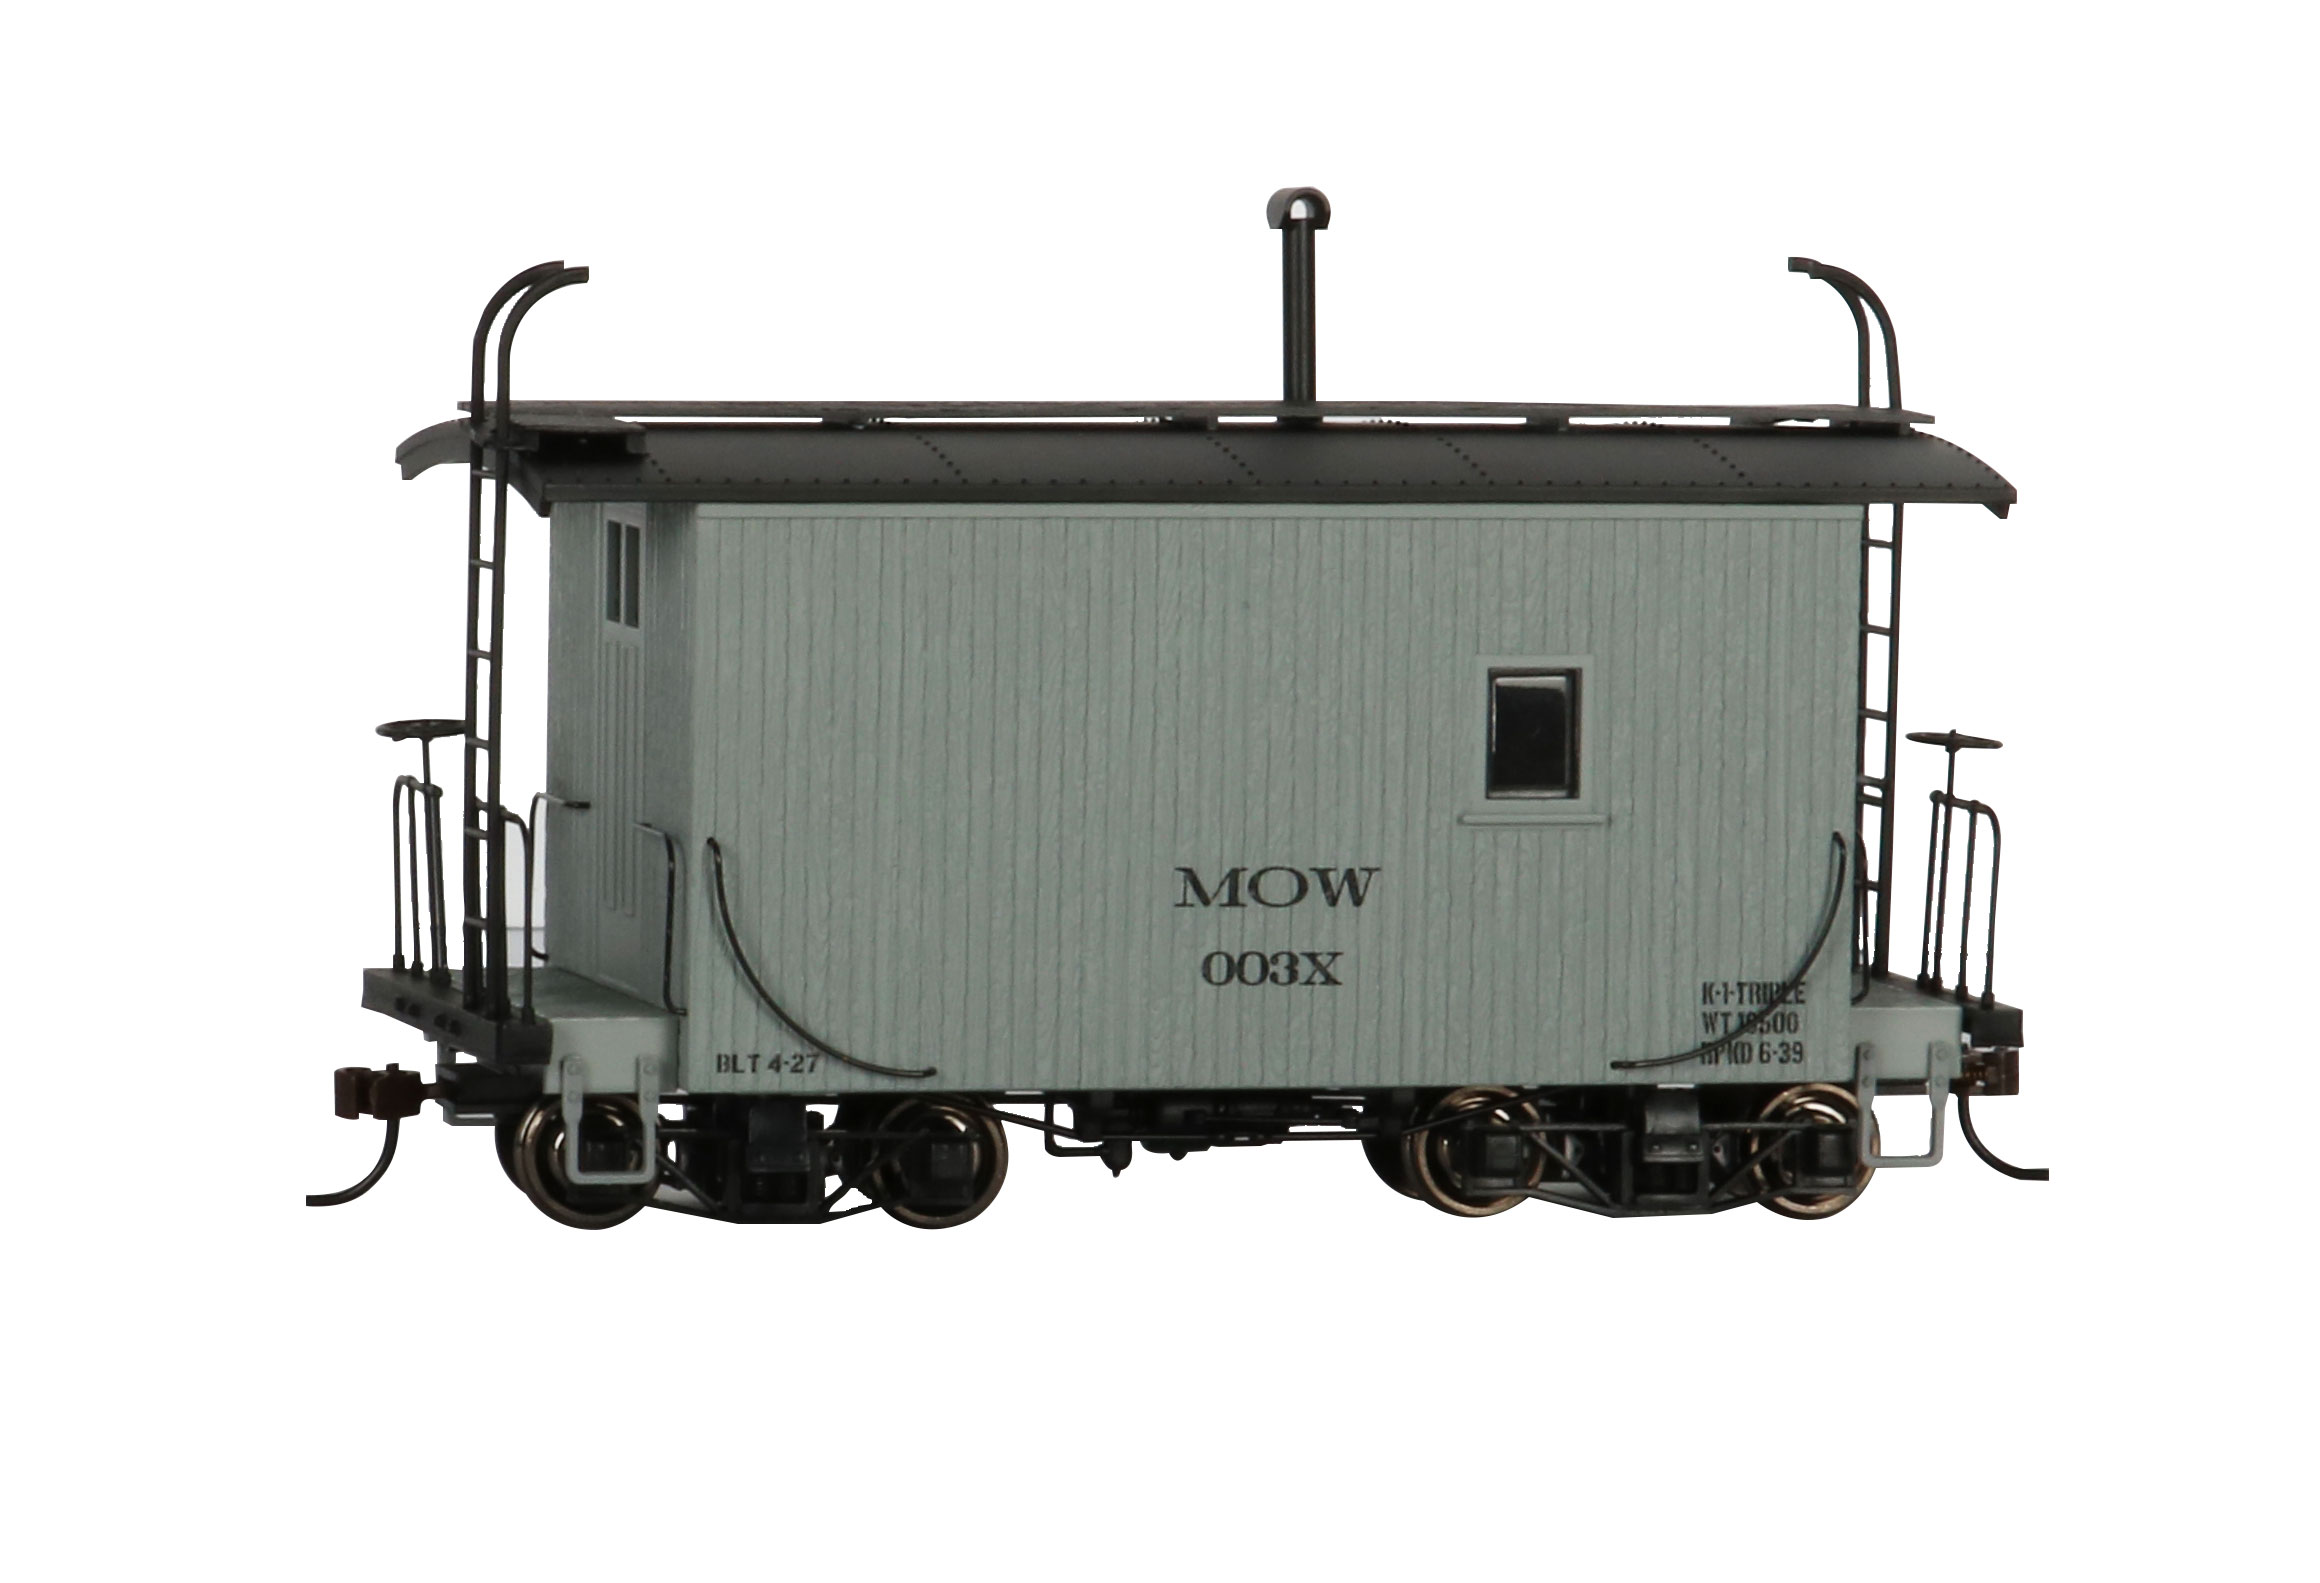 18 ft. Logging Caboose - MOW Gray, Data Only